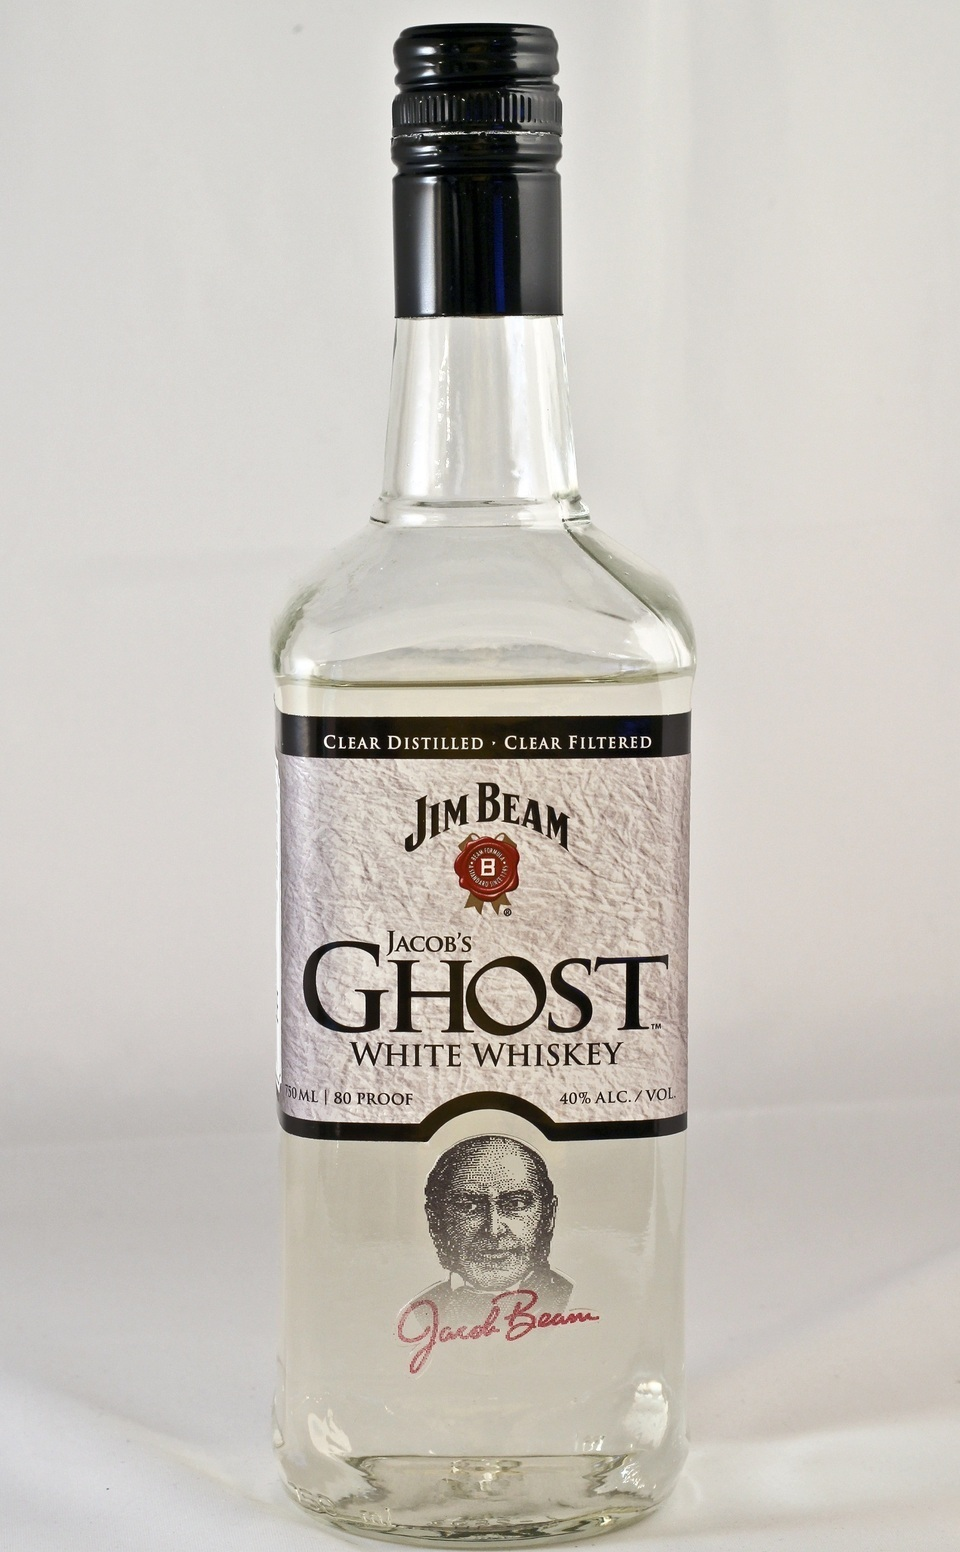 Jacob's Ghost  Celebrating the spirit of Jim Beam